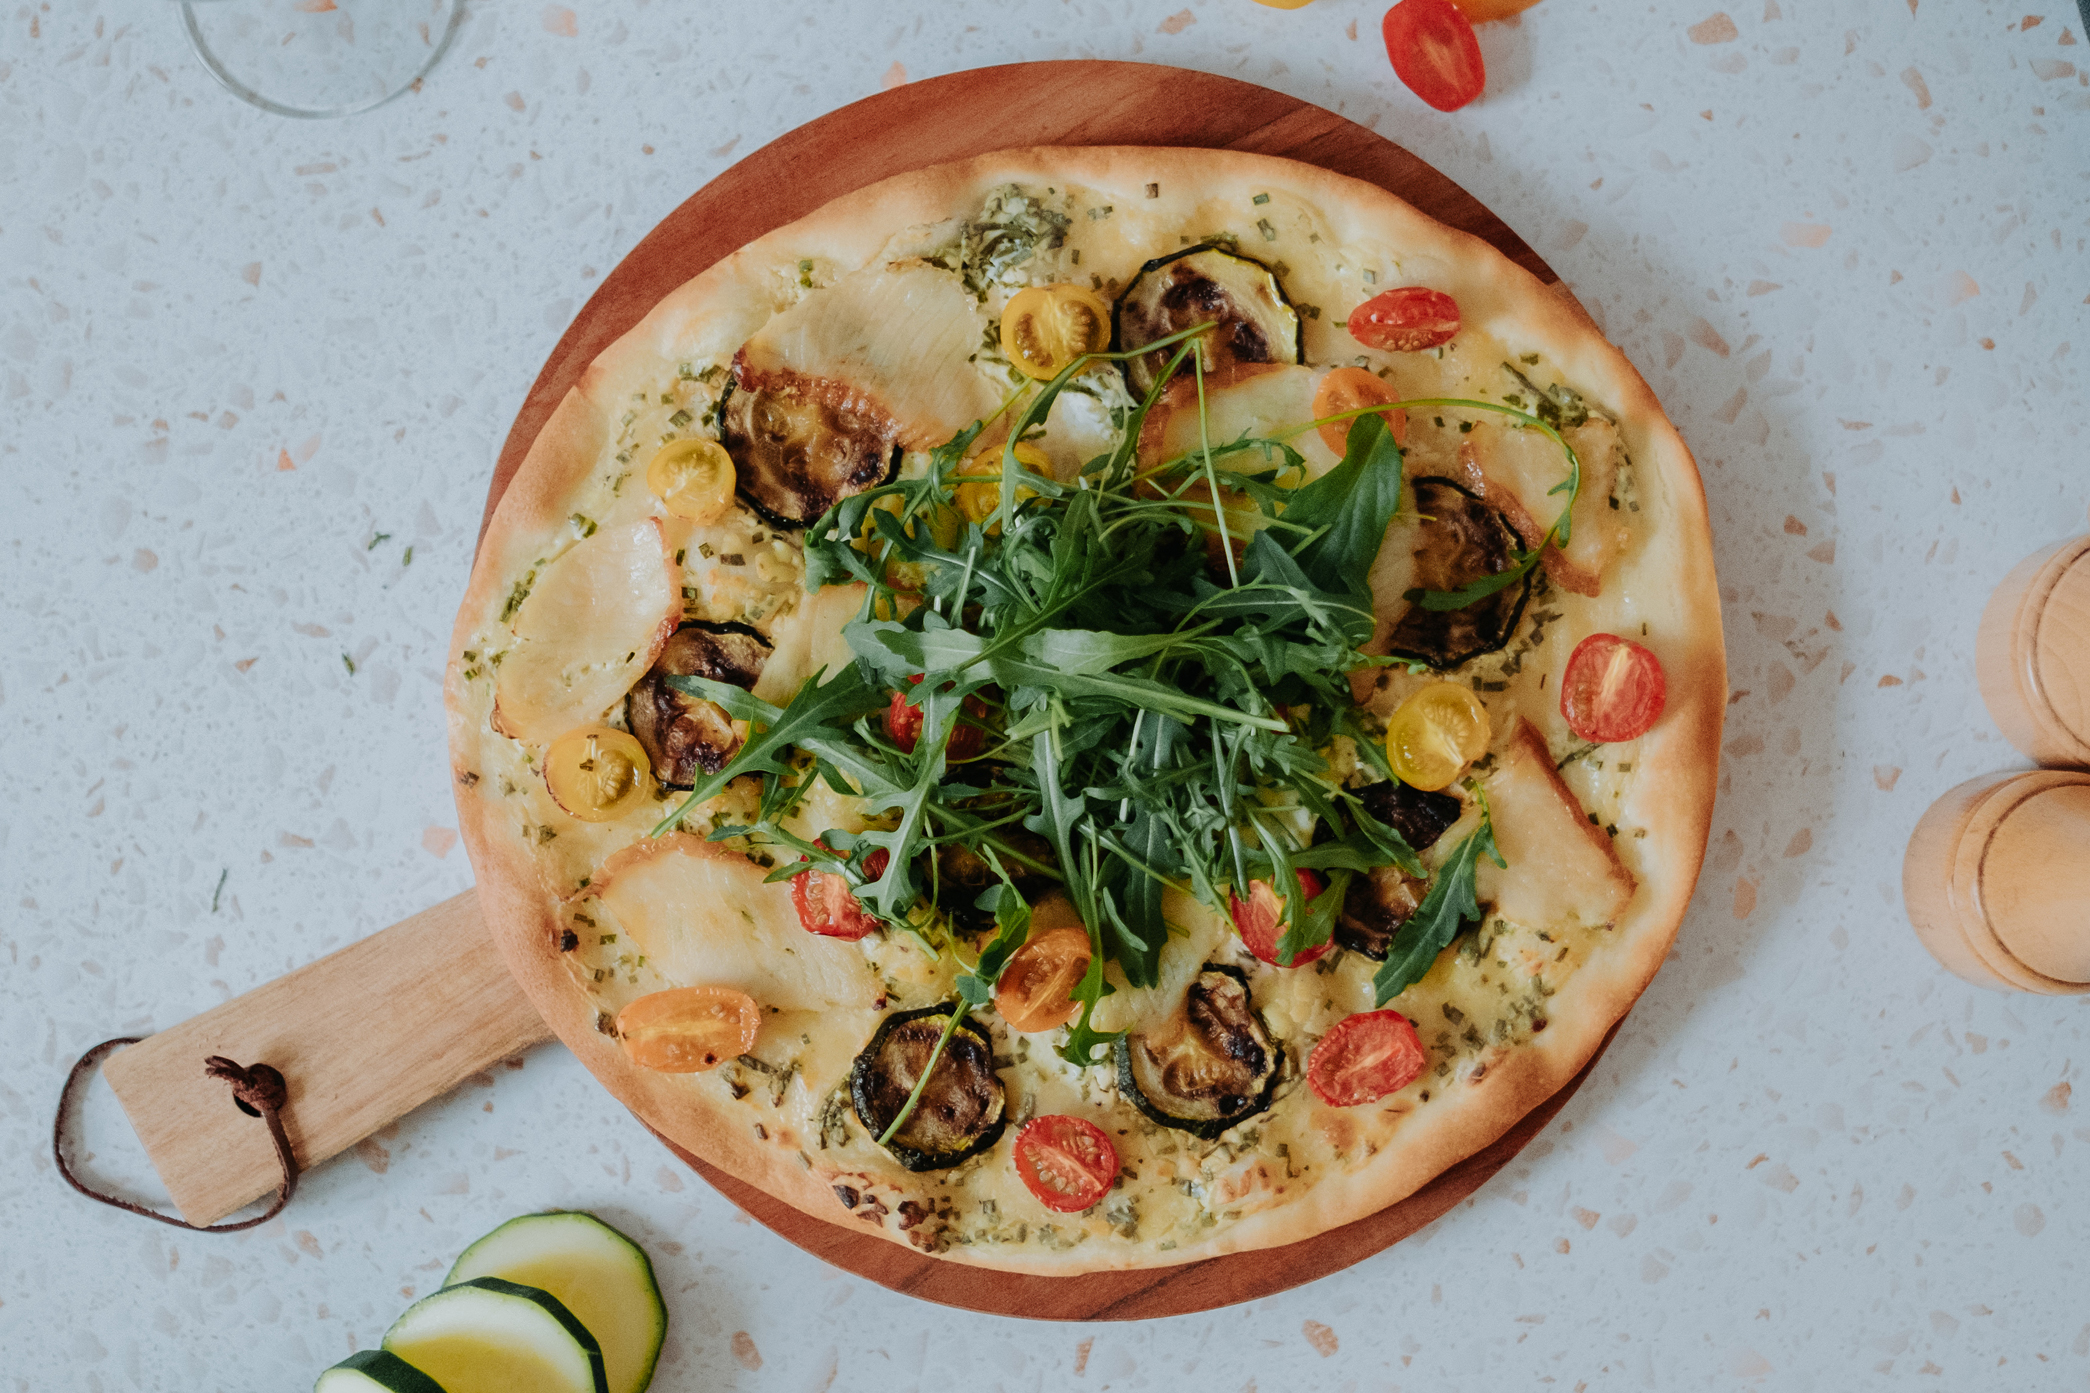 foto pizza omegabaars courgette